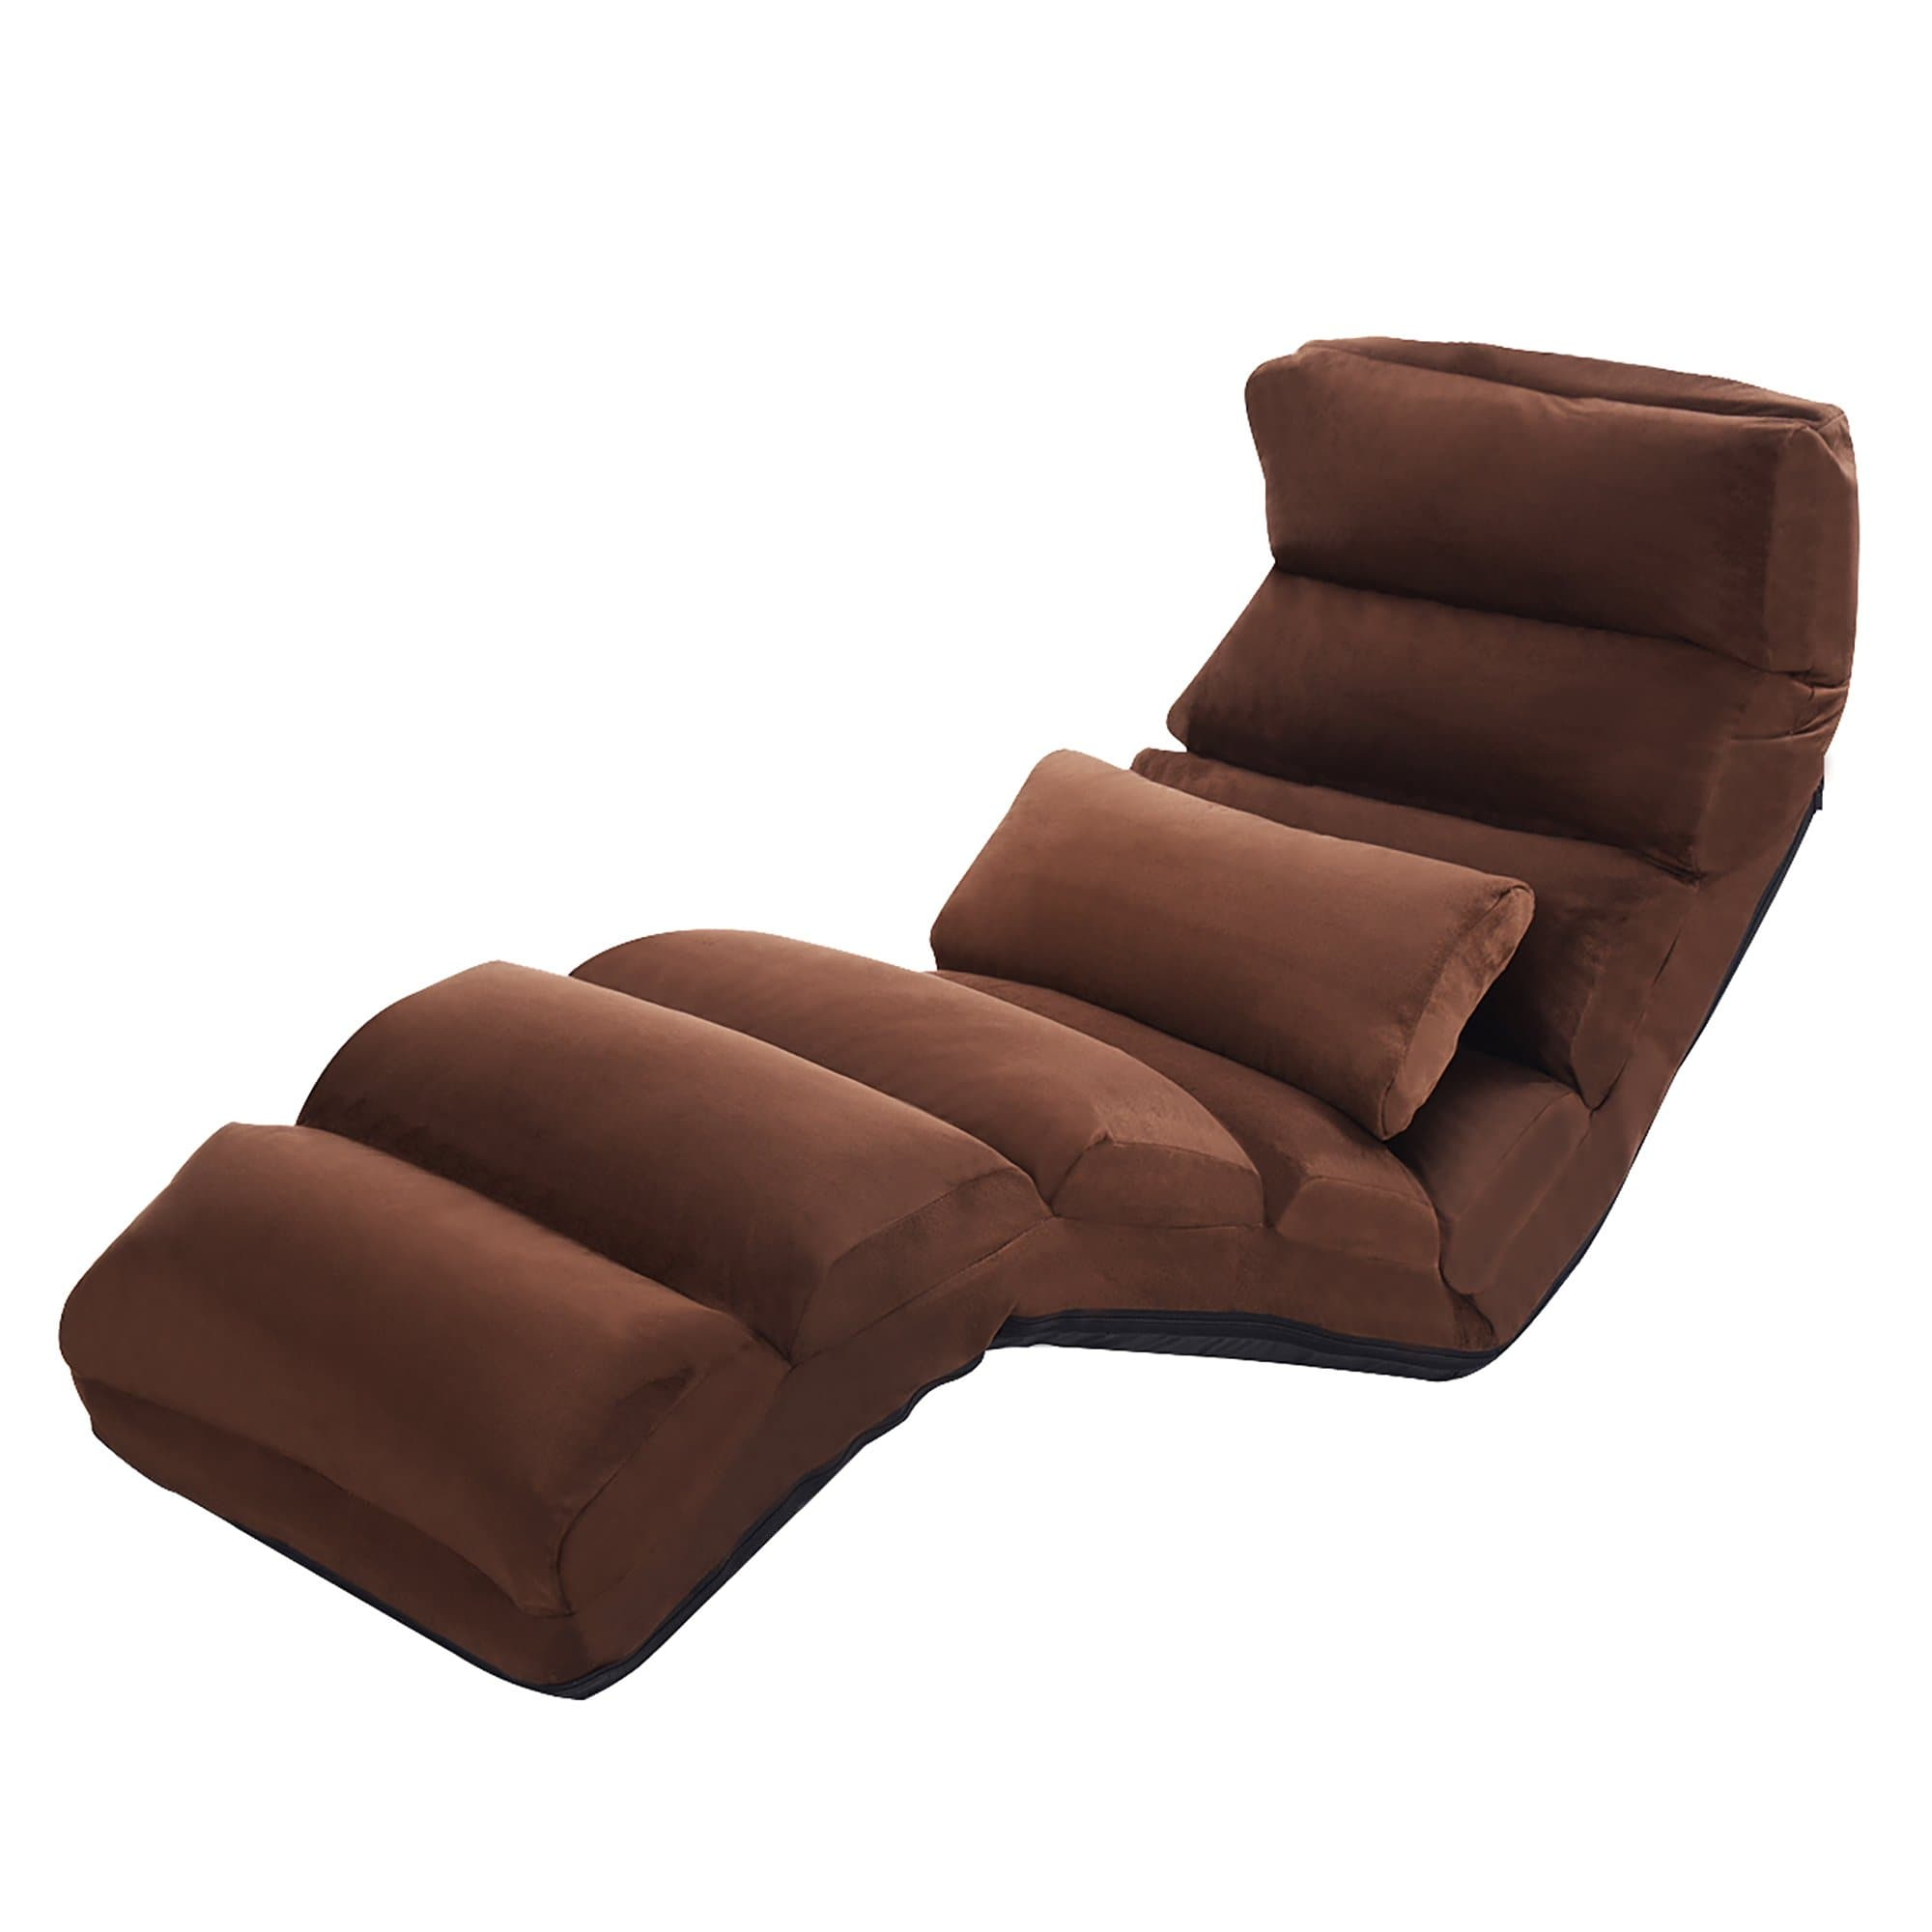 Costway Folding Lazy Sofa Chair Stylish Sofa Couch Beds Lounge Chair W/Pillow Coffee New - FLJ CORPORATIONS